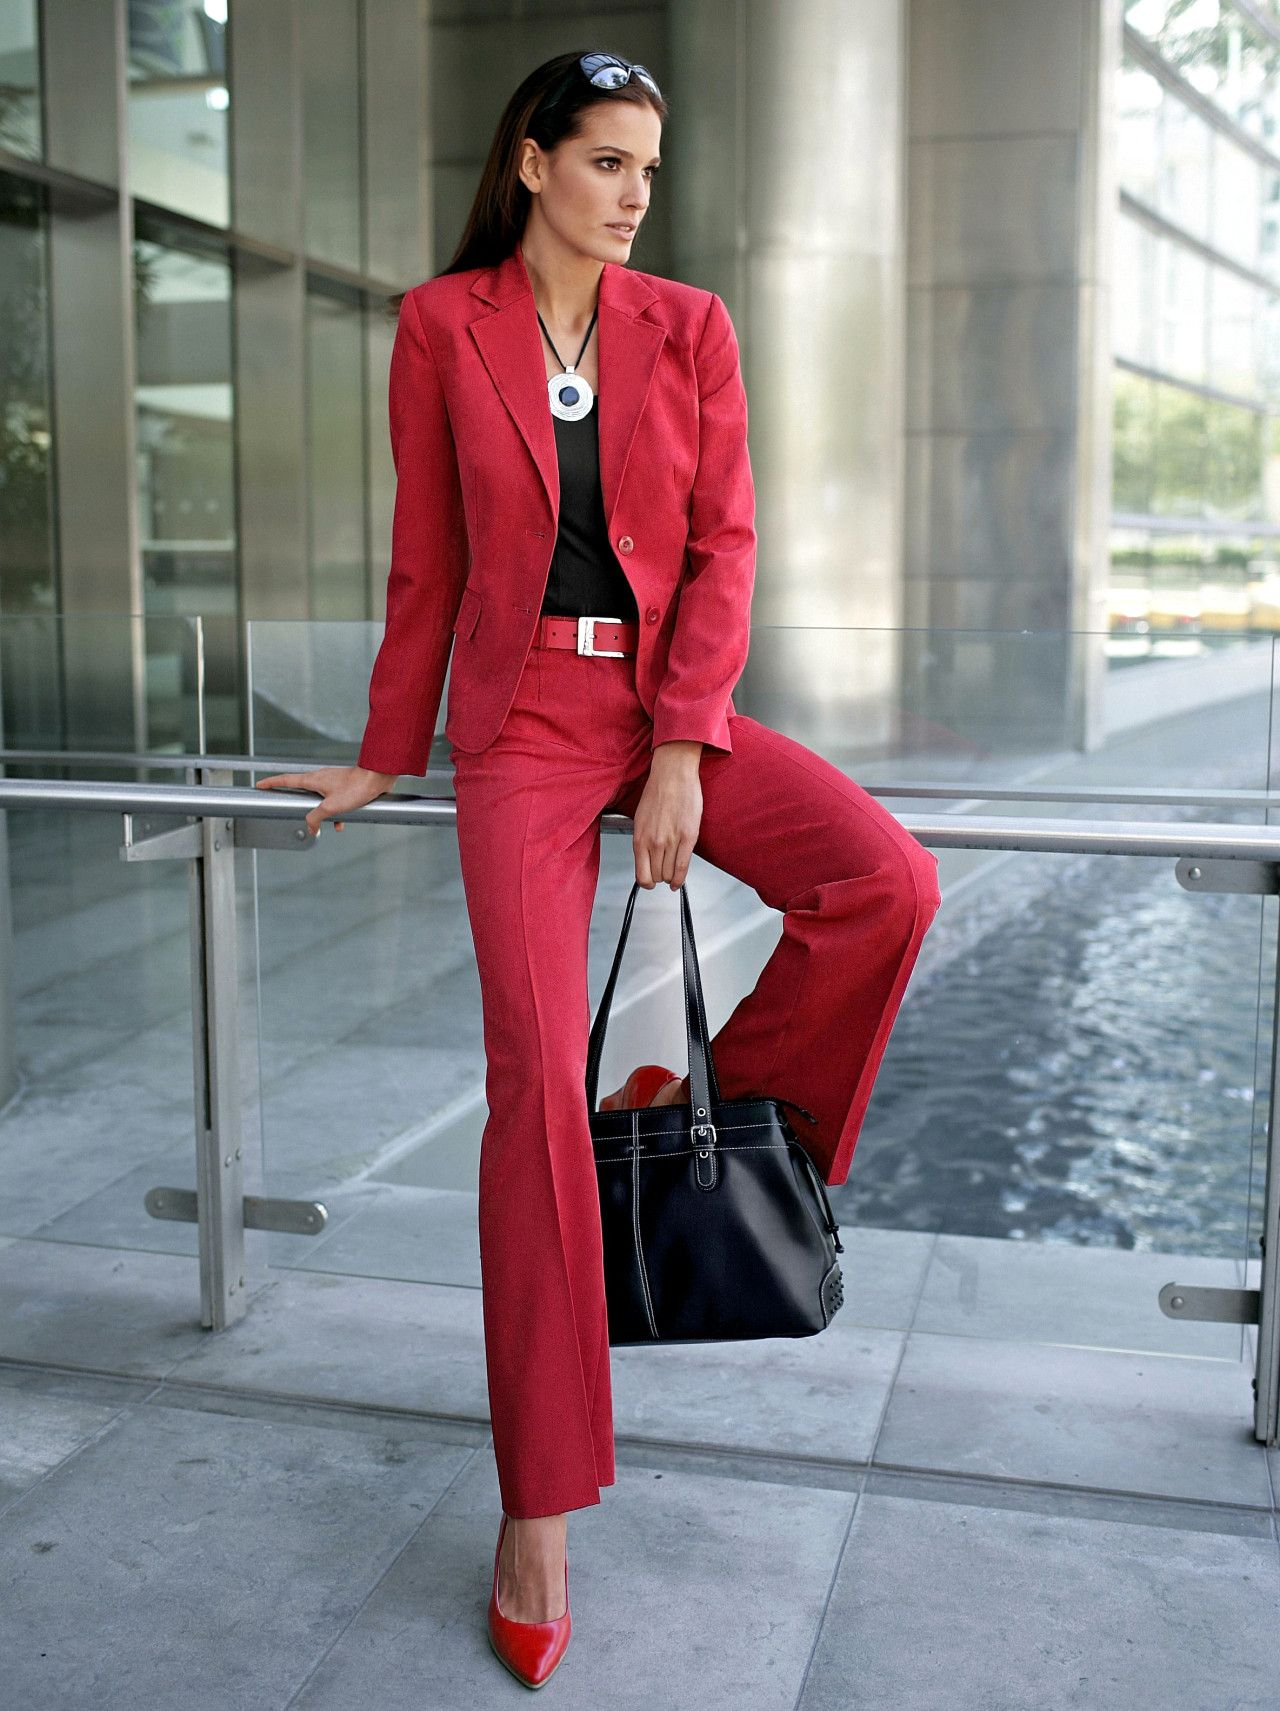 Skirt suits, uniforms, amazing dresses...: Photo | women in red ...